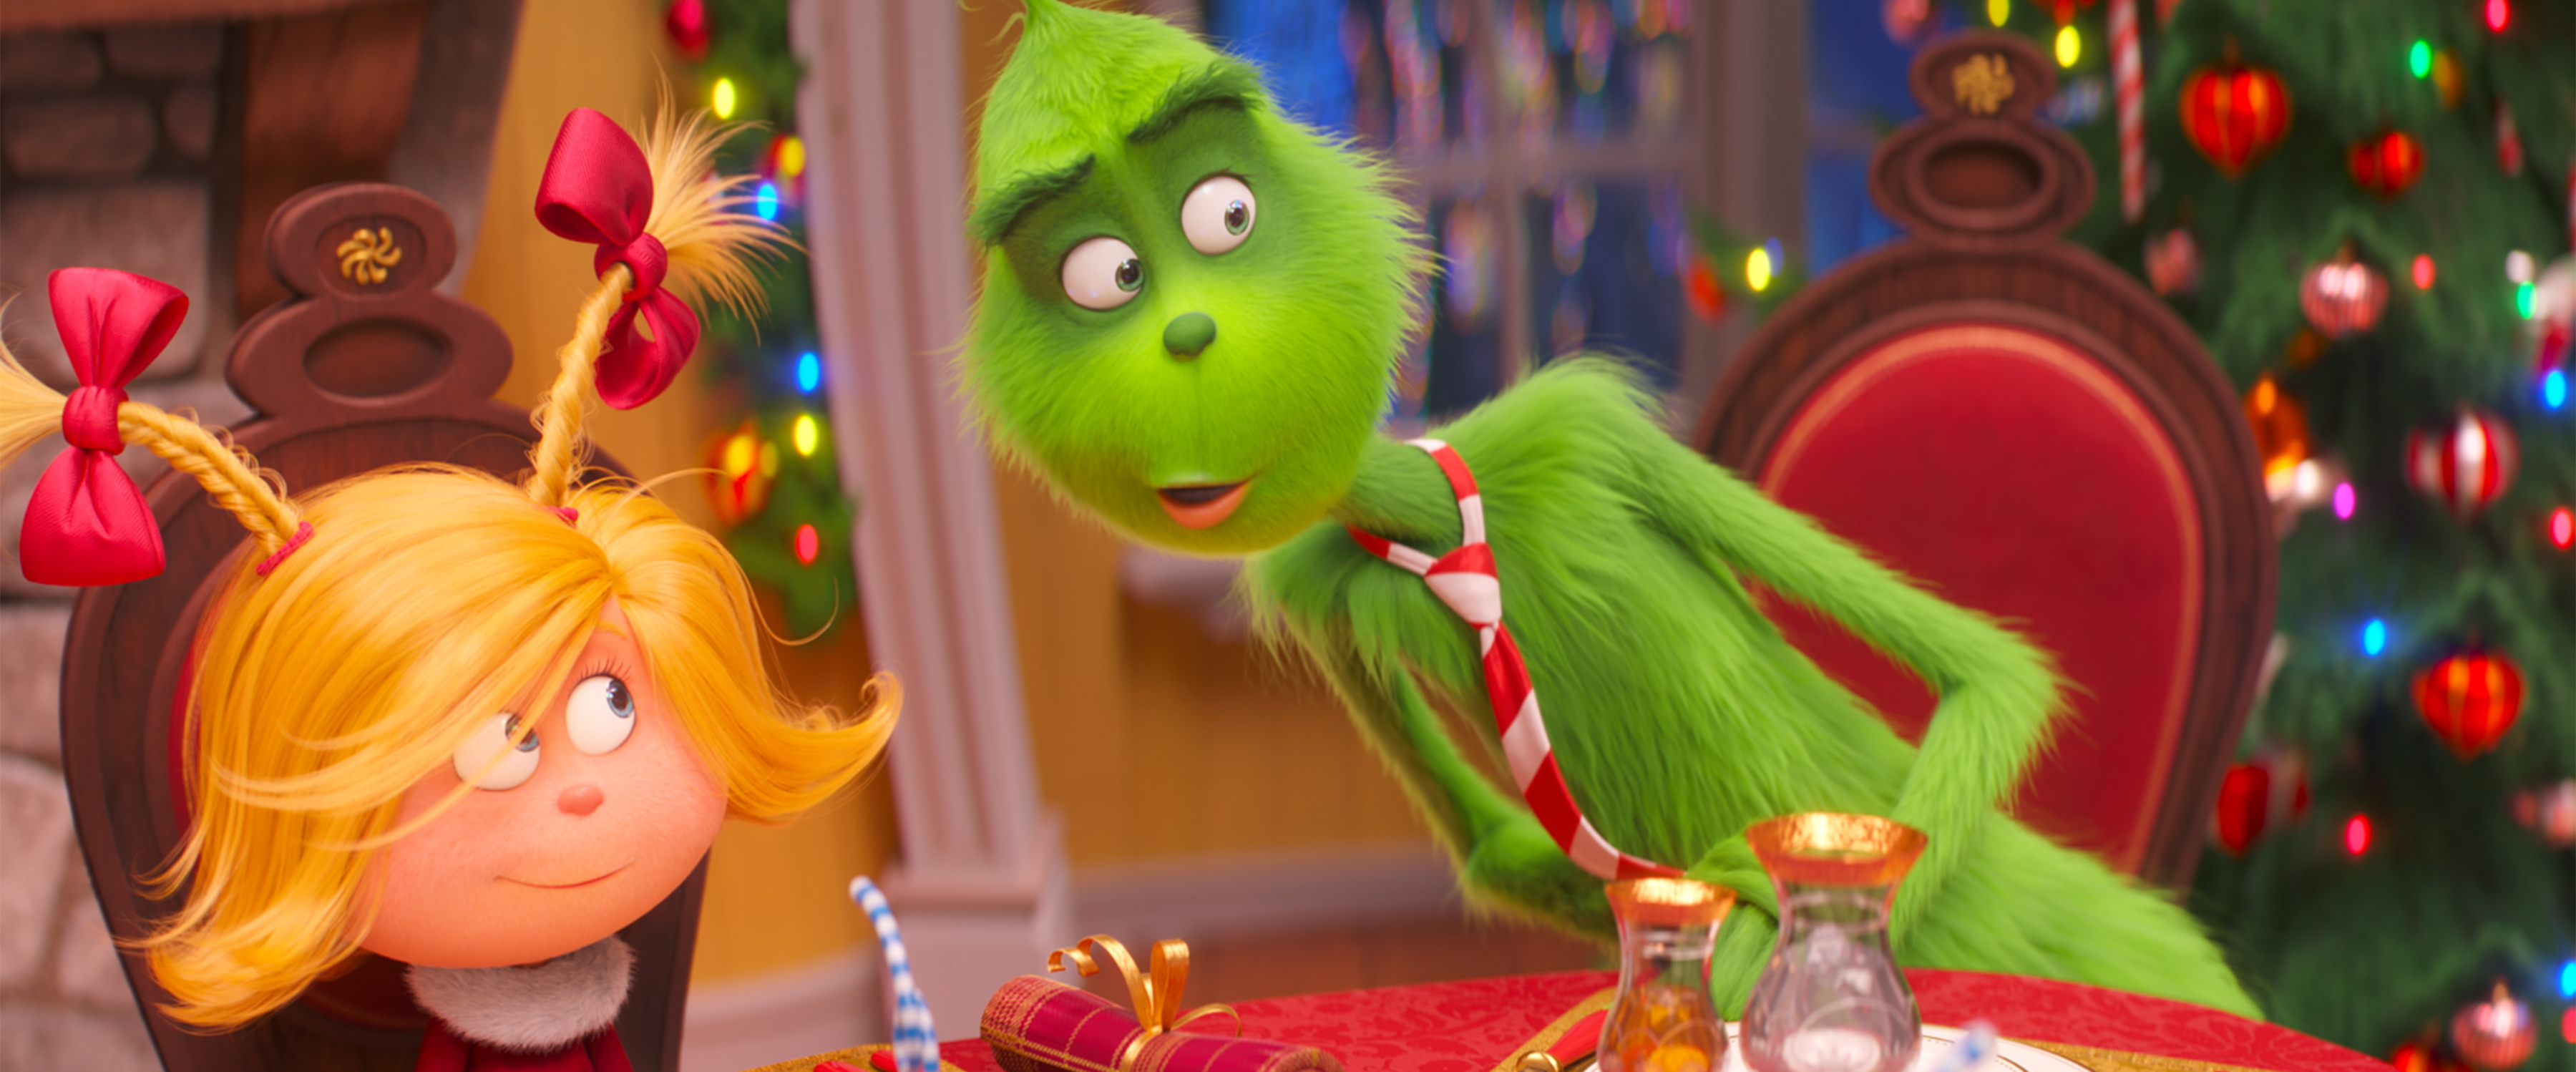 Now He S Not Quite Such A Mean One That Mr Grinch The Boston Globe